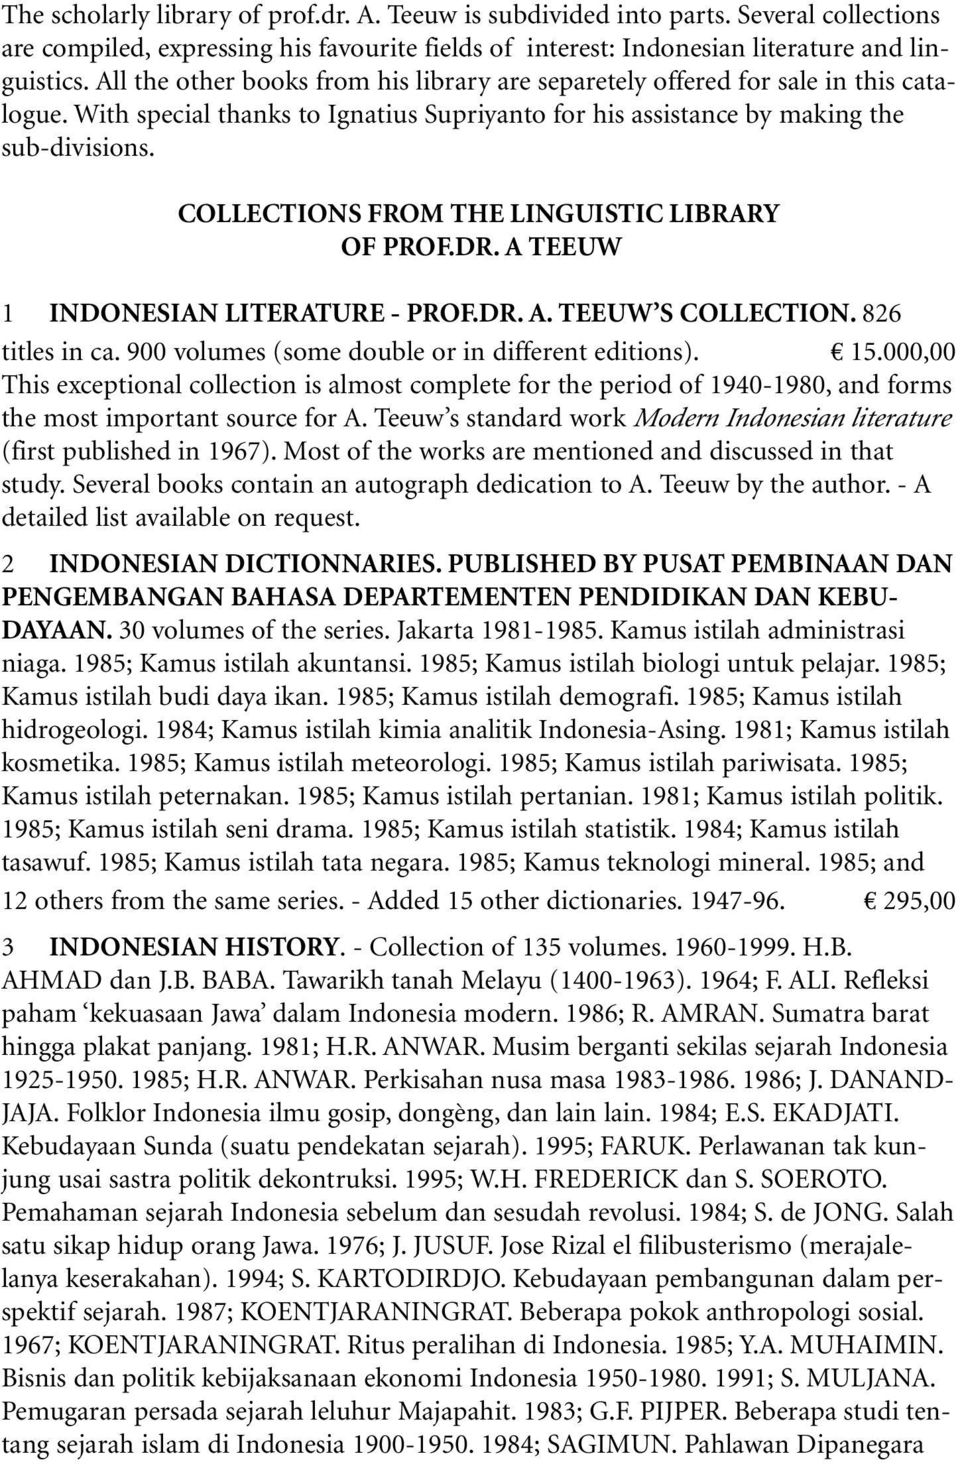 COLLECTIONS FROM THE LINGUISTIC LIBRARY OF PROF.DR. A TEEUW 1 INDONESIAN LITERATURE - PROF.DR. A. TEEUW S COLLECTION. 826 titles in ca. 900 volumes (some double or in different editions). 15.